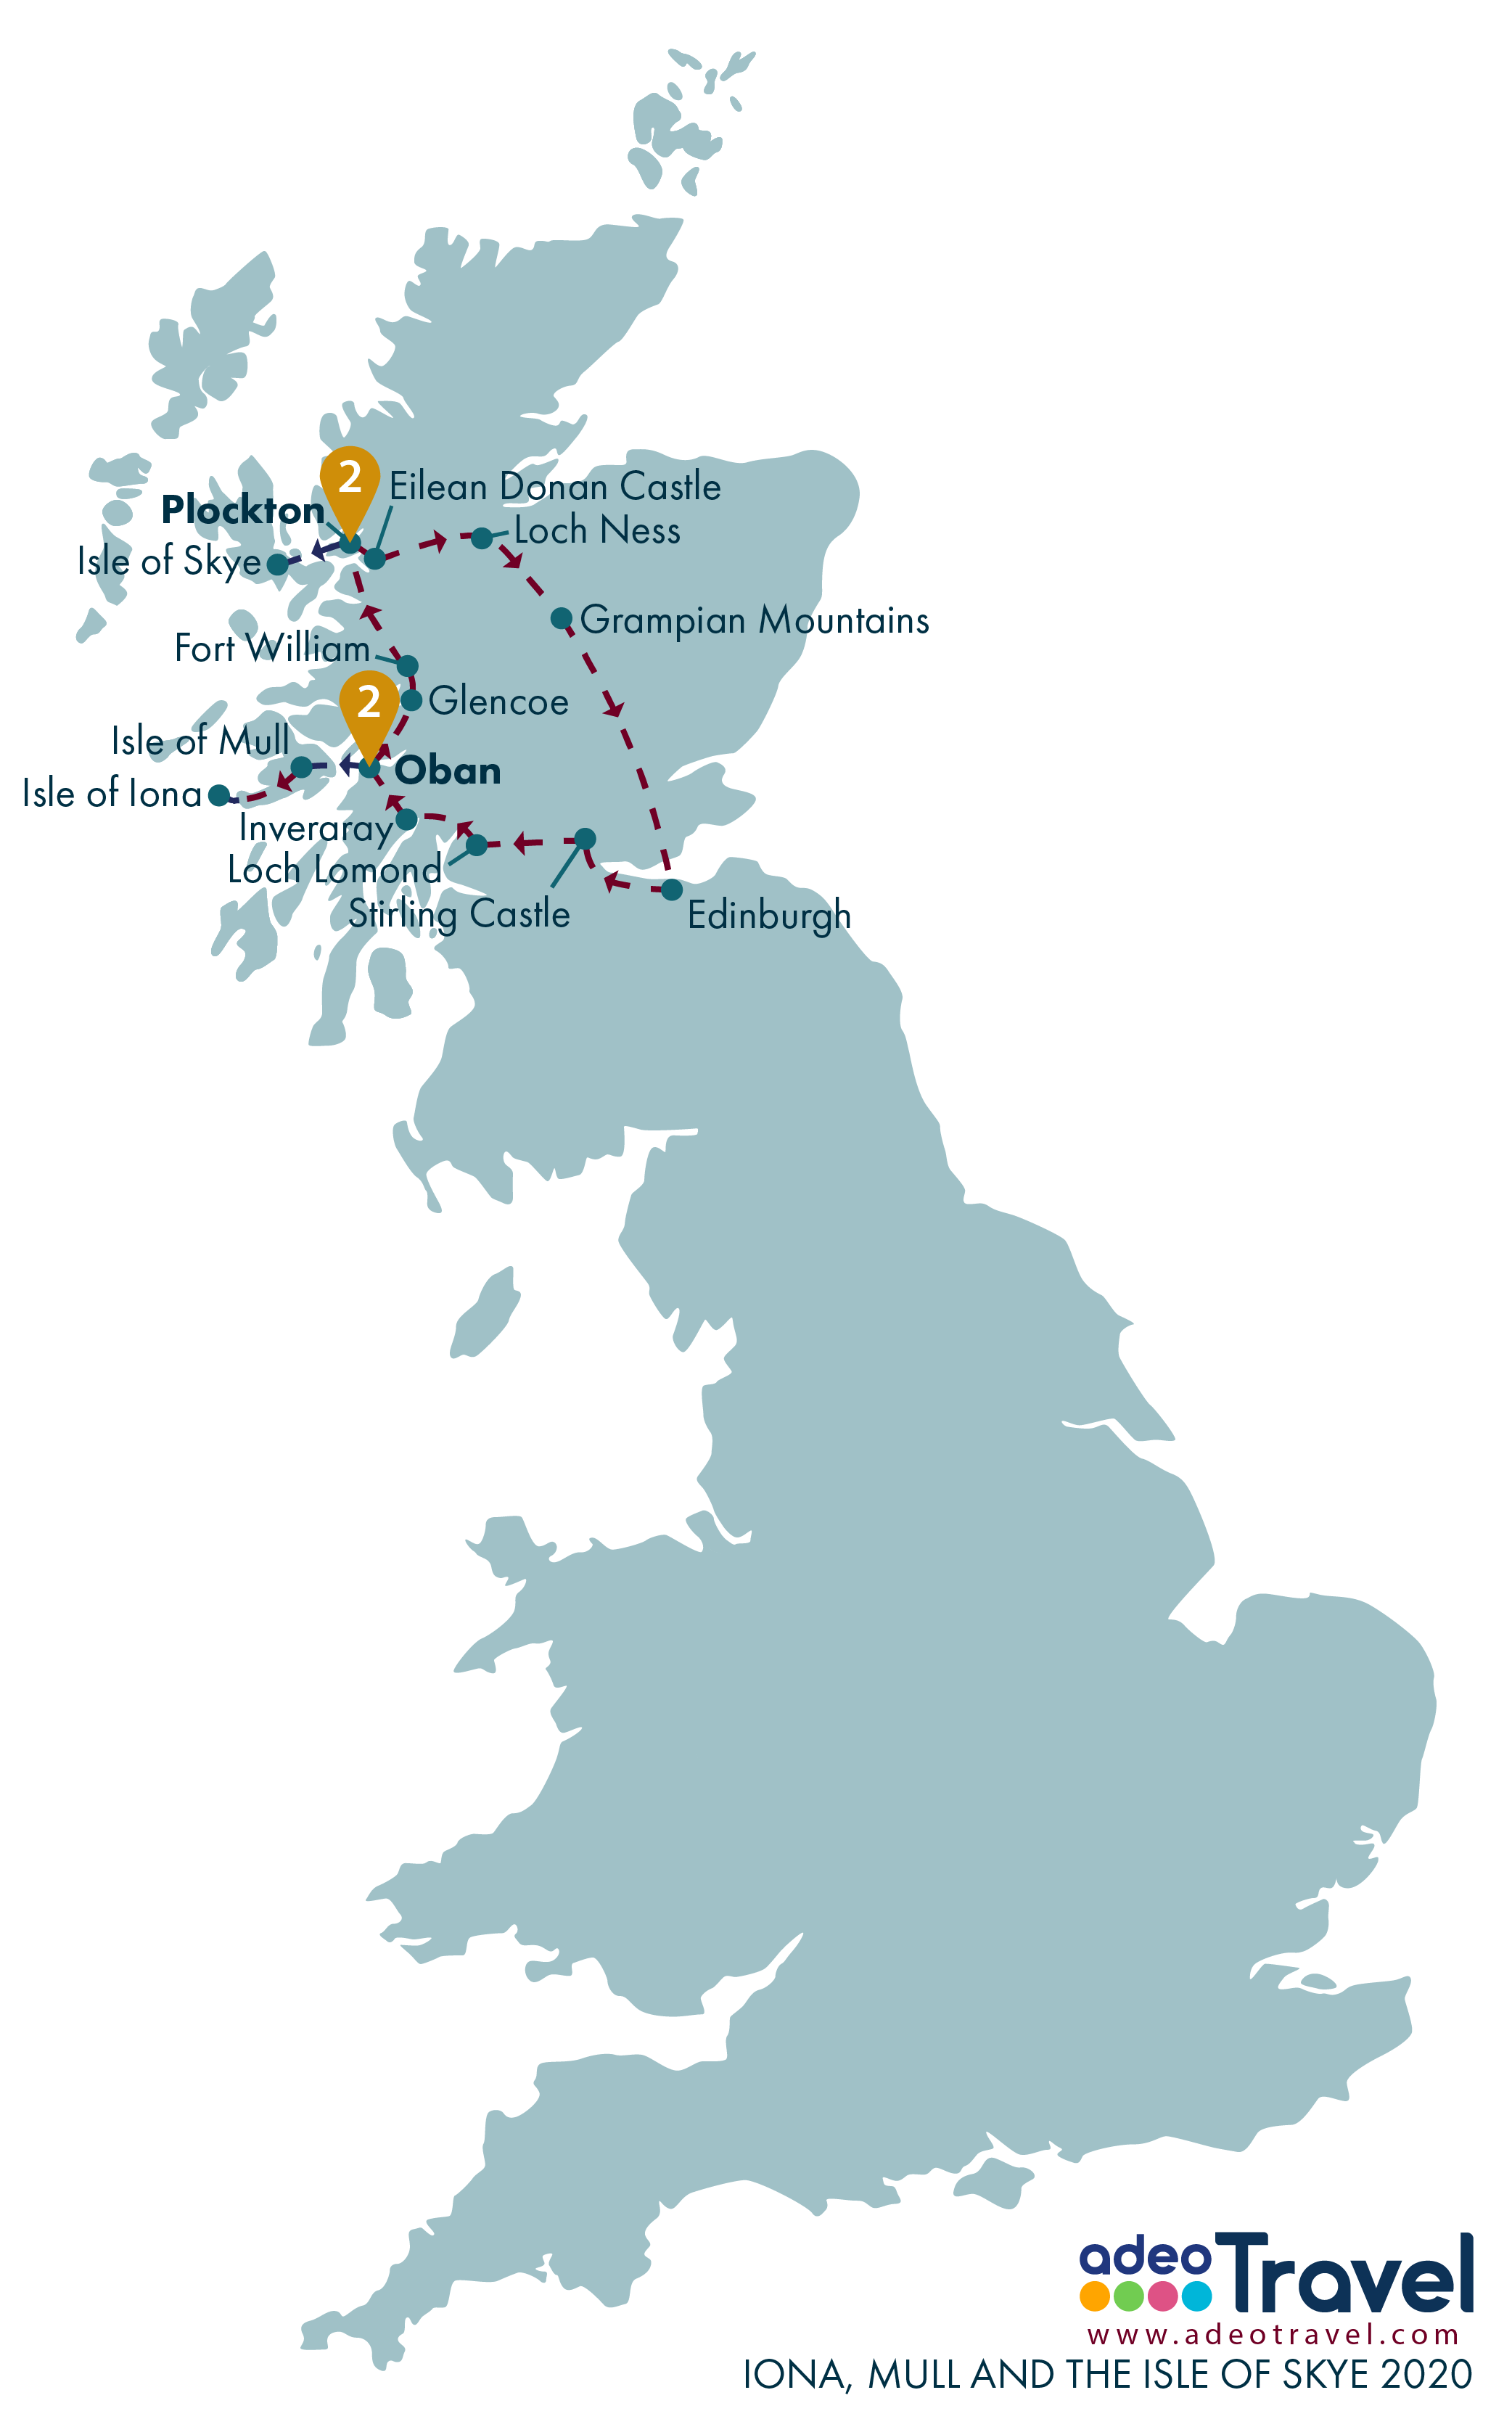 Map - Iona, Mull and Skye 2020